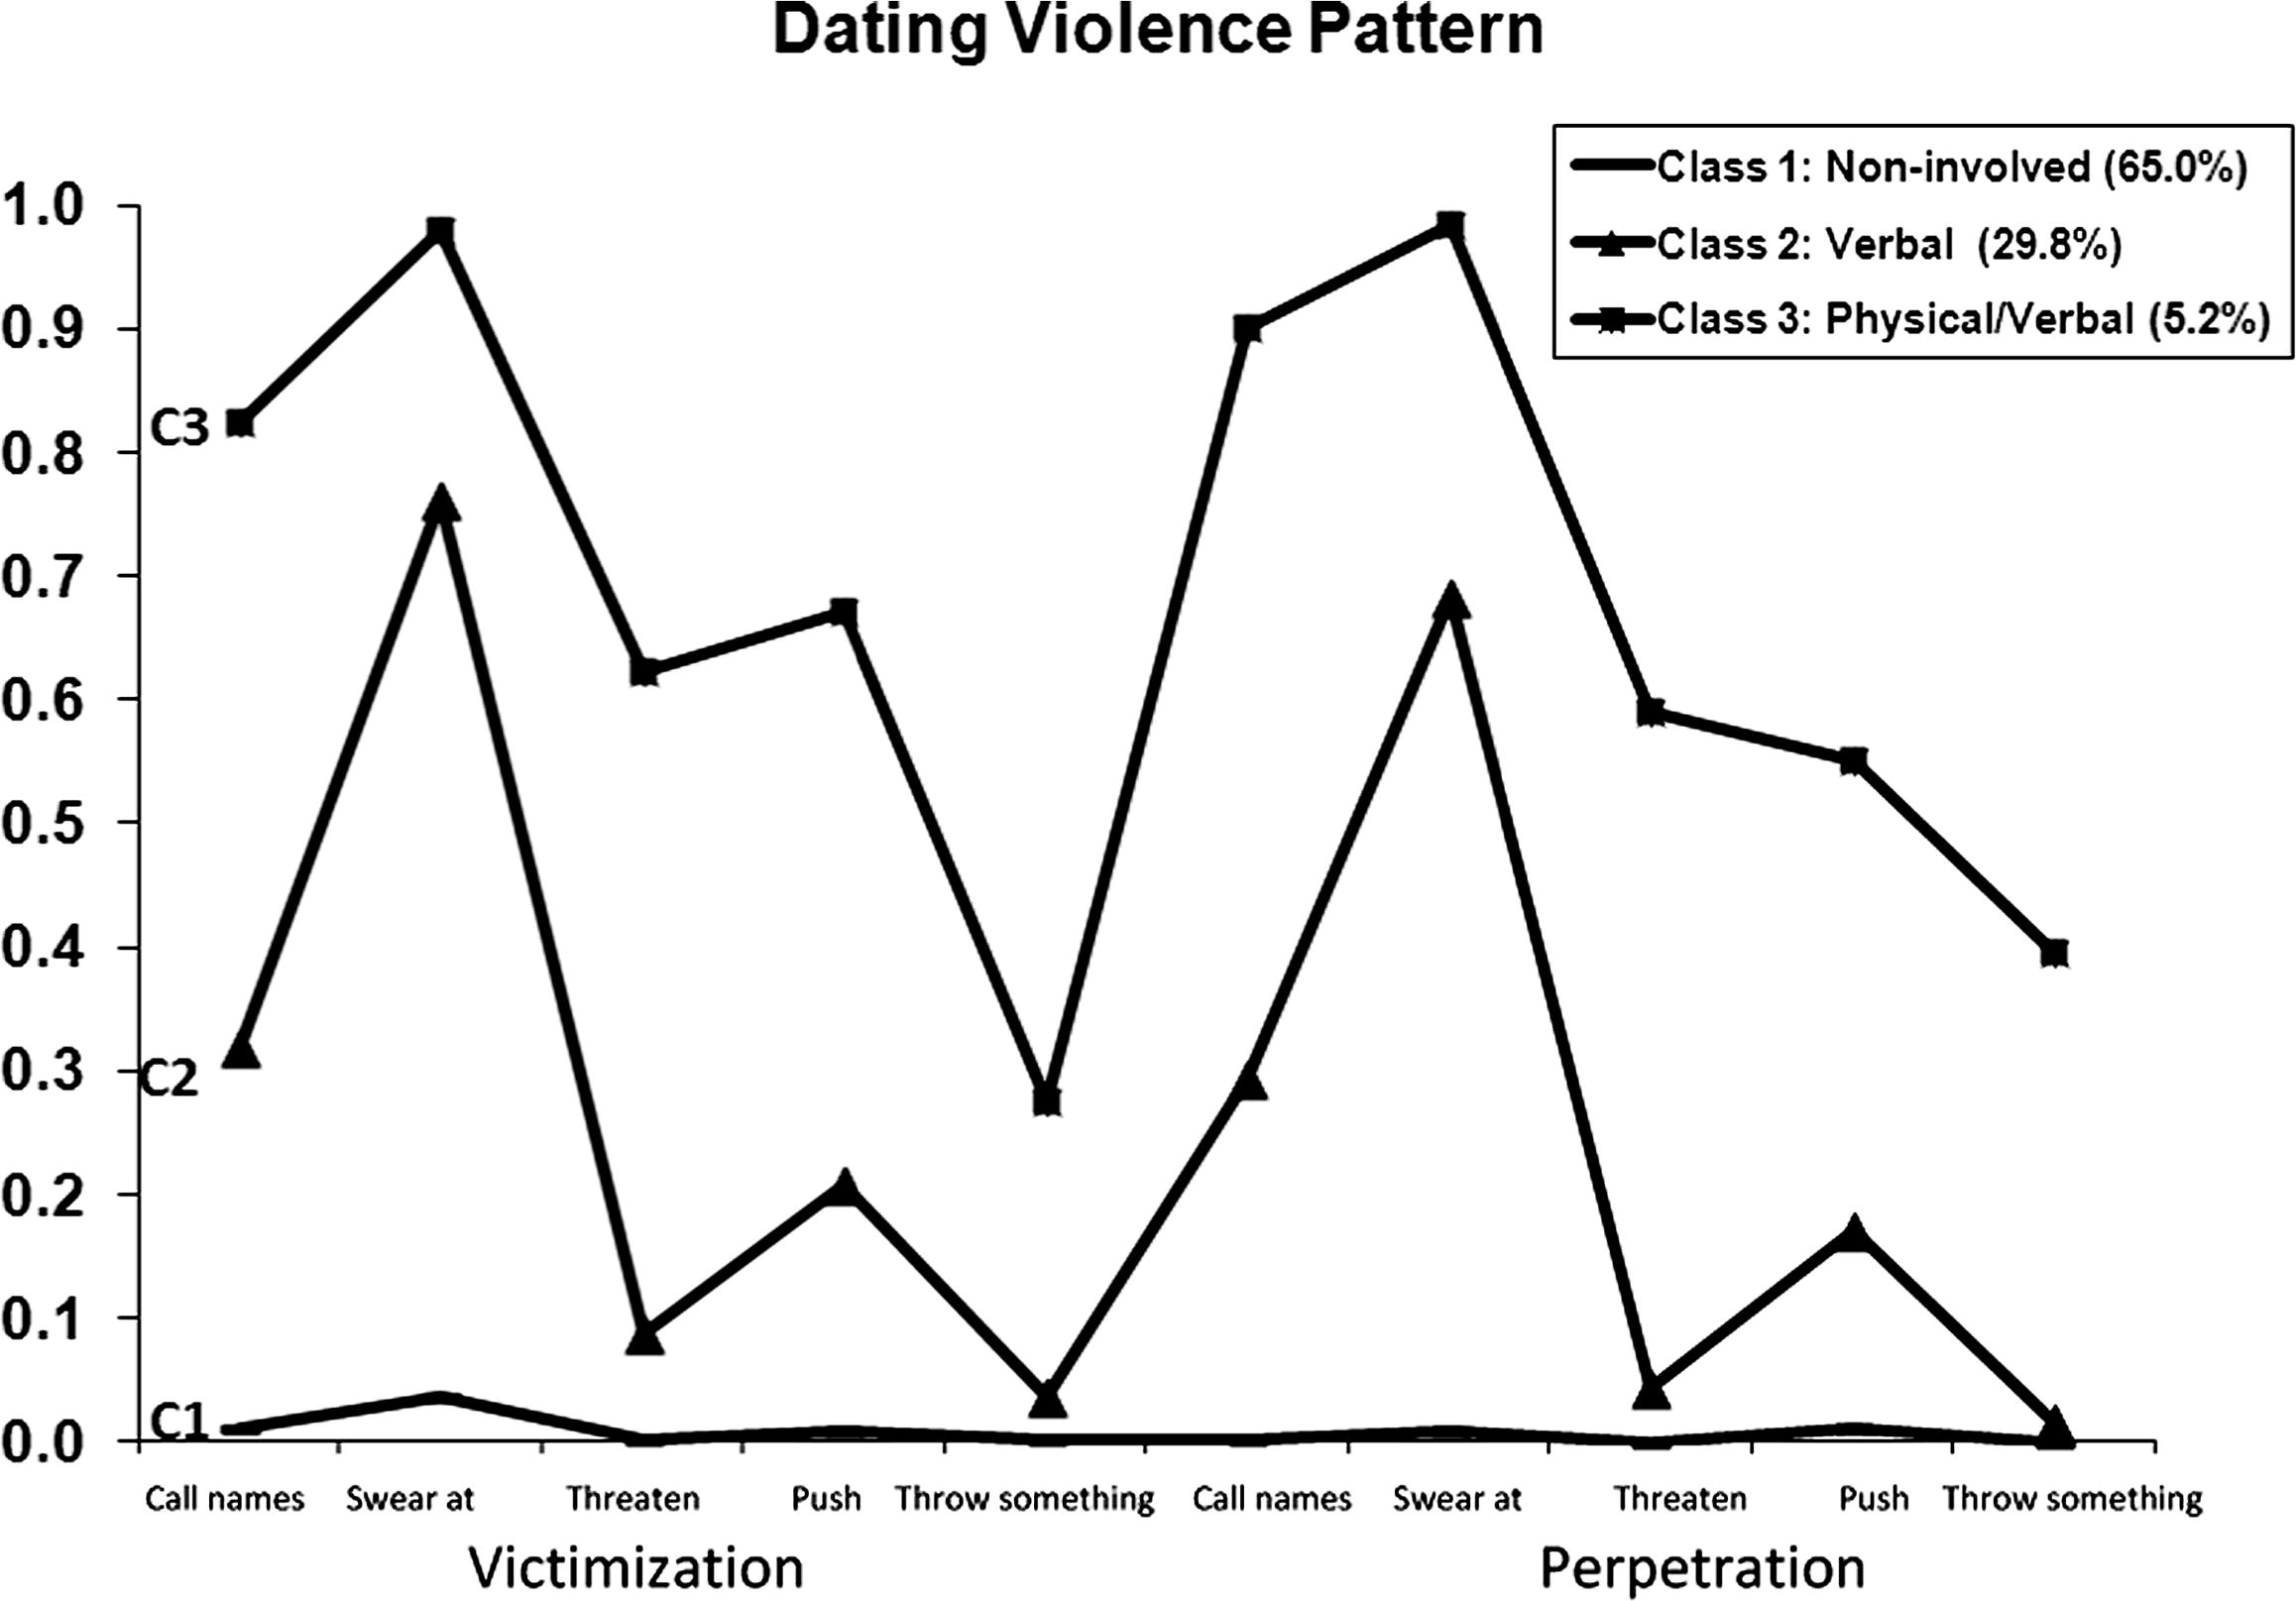 Dating Violence Perpetration and Victimization Among U.S